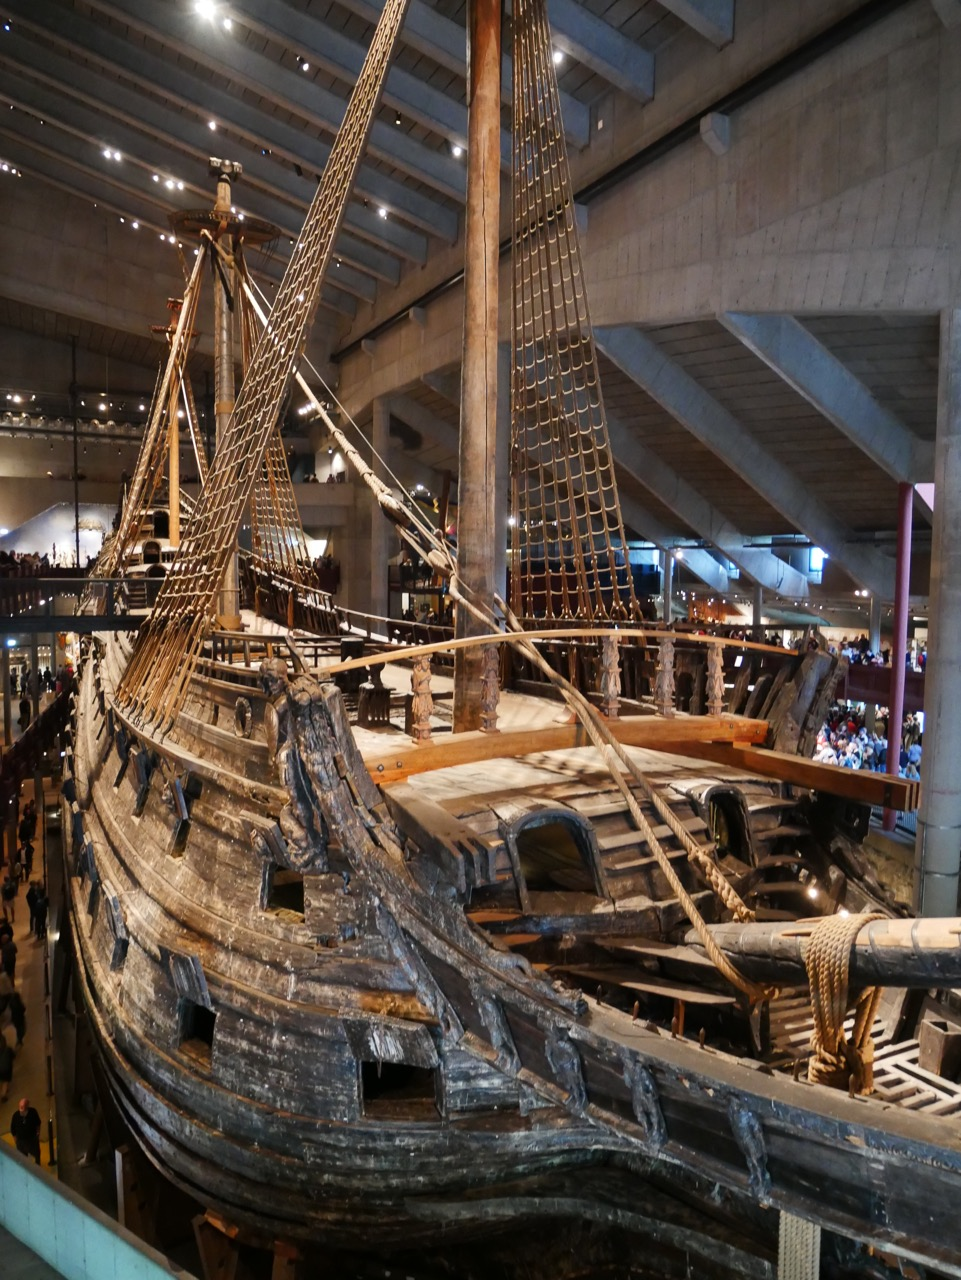 The bow of Vasa. It felt impossible to take a single photo of the entire ship.